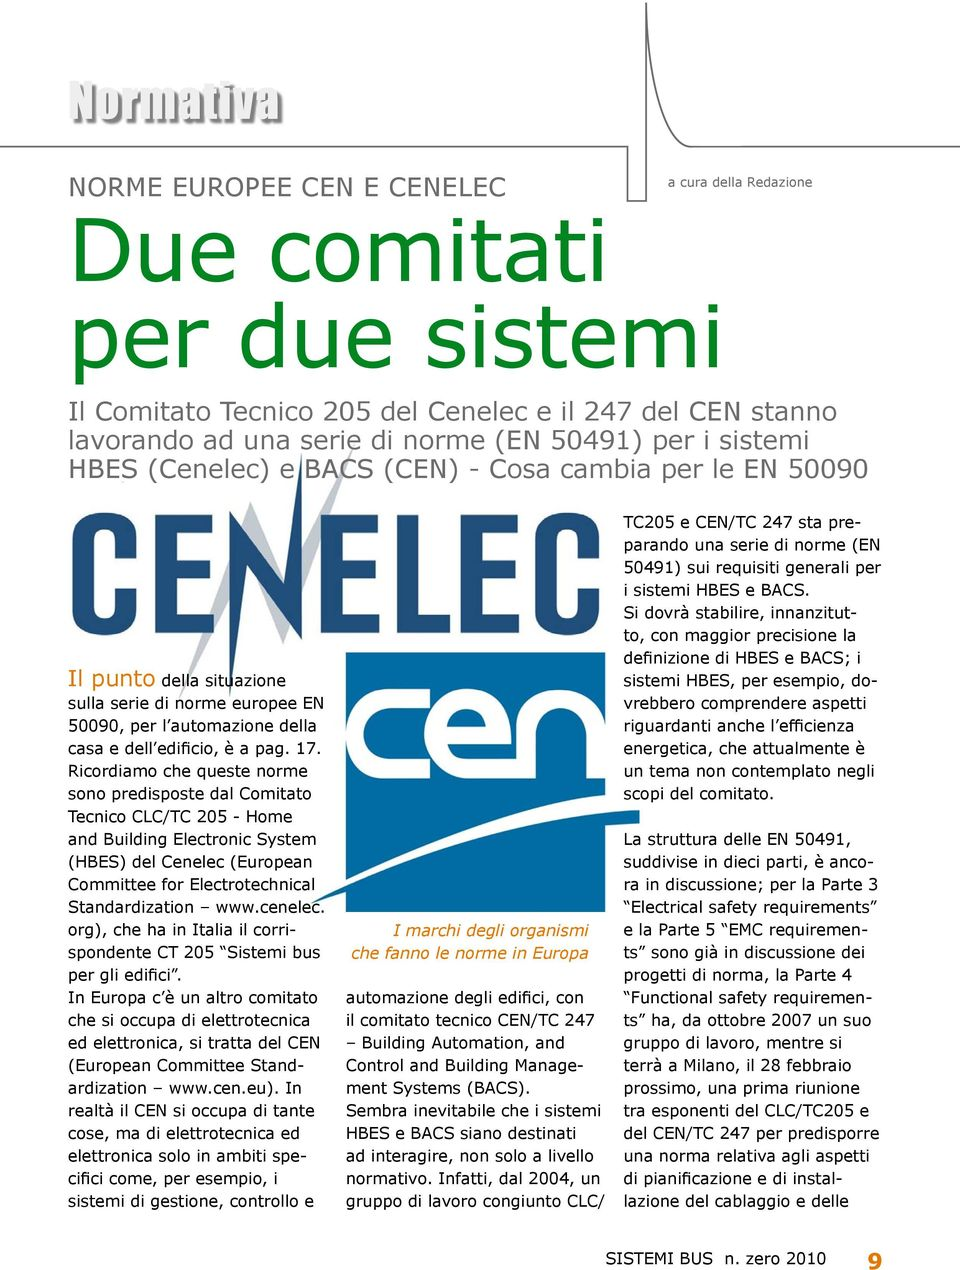 Ricordiamo che queste norme sono predisposte dal Comitato Tecnico CLC/TC 205 - Home and Building Electronic System (HBES) del Cenelec (European Committee for Electrotechnical Standardization www.